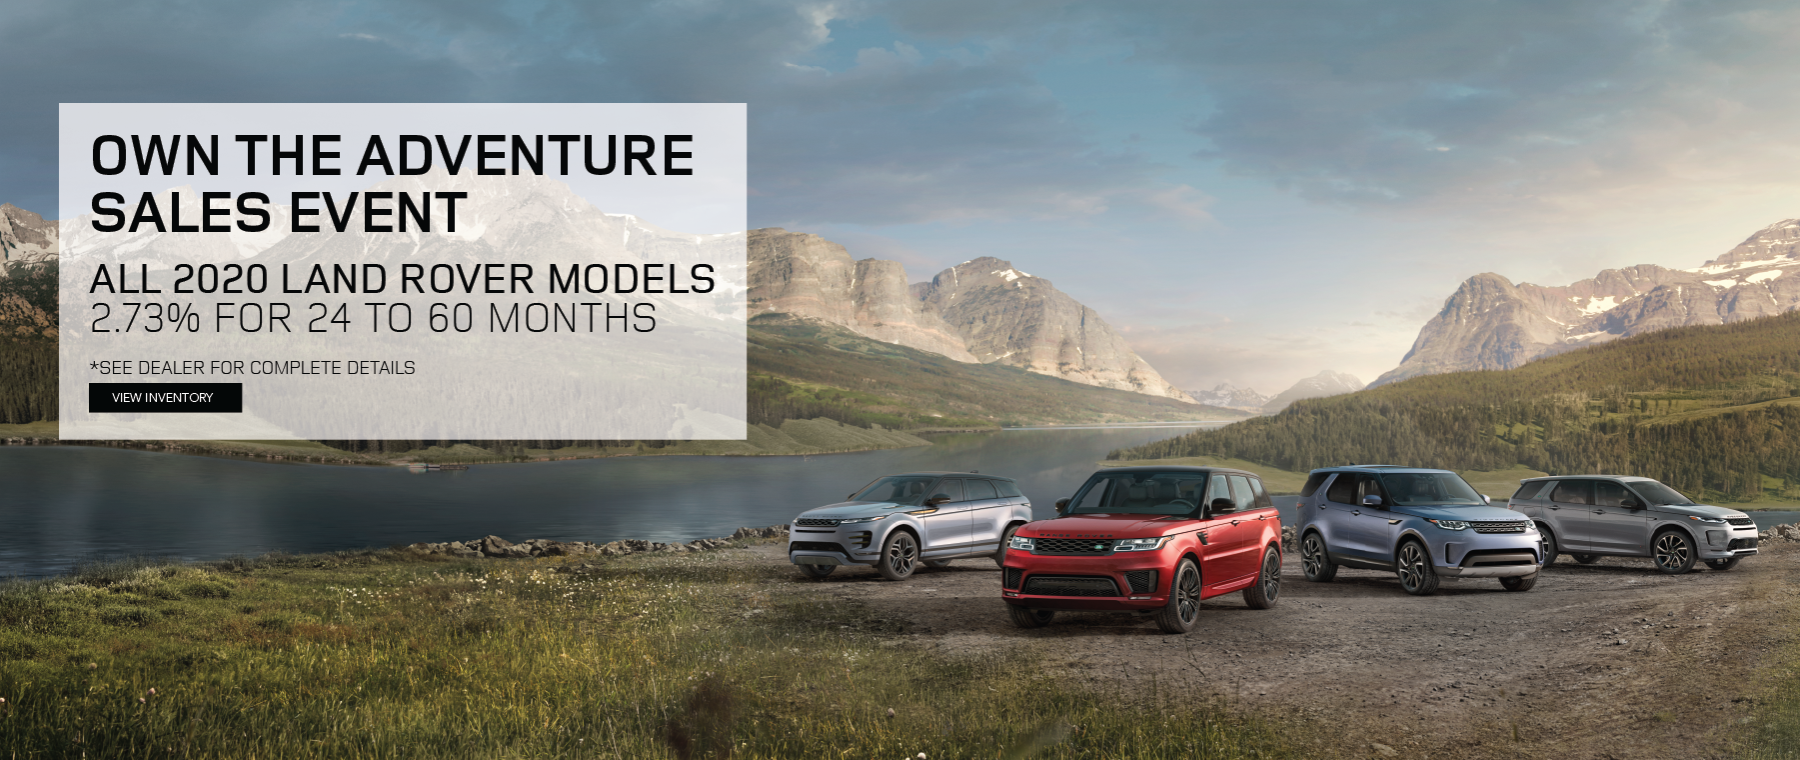 Land Rover Own the Adventure Sales Event  - 2.73% for 24 to 60 months on all 2020 Land Rover models. Click to view inventory. See dealer for complete details.